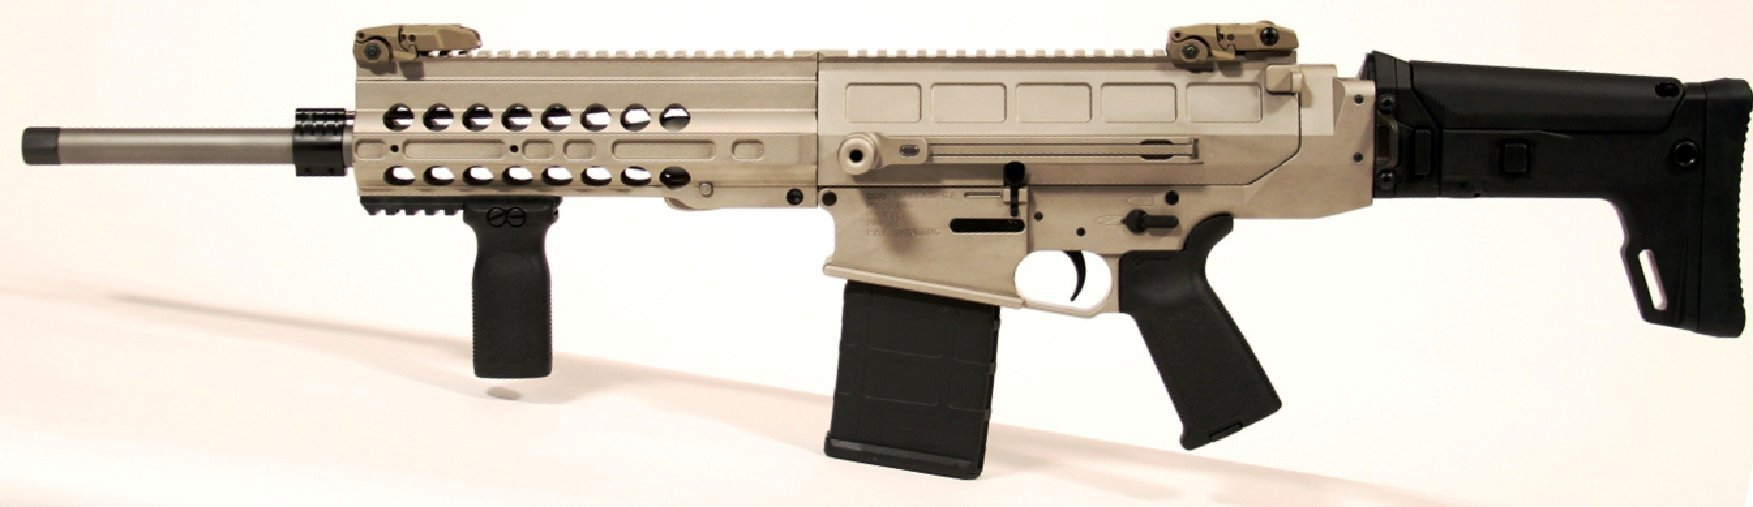 DRD Tactical Paratus Rifle 1 DRD Tactical Paratus Rifle: Revolutionary 7.62mm NATO/.308 Win. Quick Breakdown/Takedown Tactical AR Rifle/Carbine for Clandestine Break Down Semi Automatic Rifle (CSR) and Compact Semi Automatic Sniper System (CSASS) (Video!)